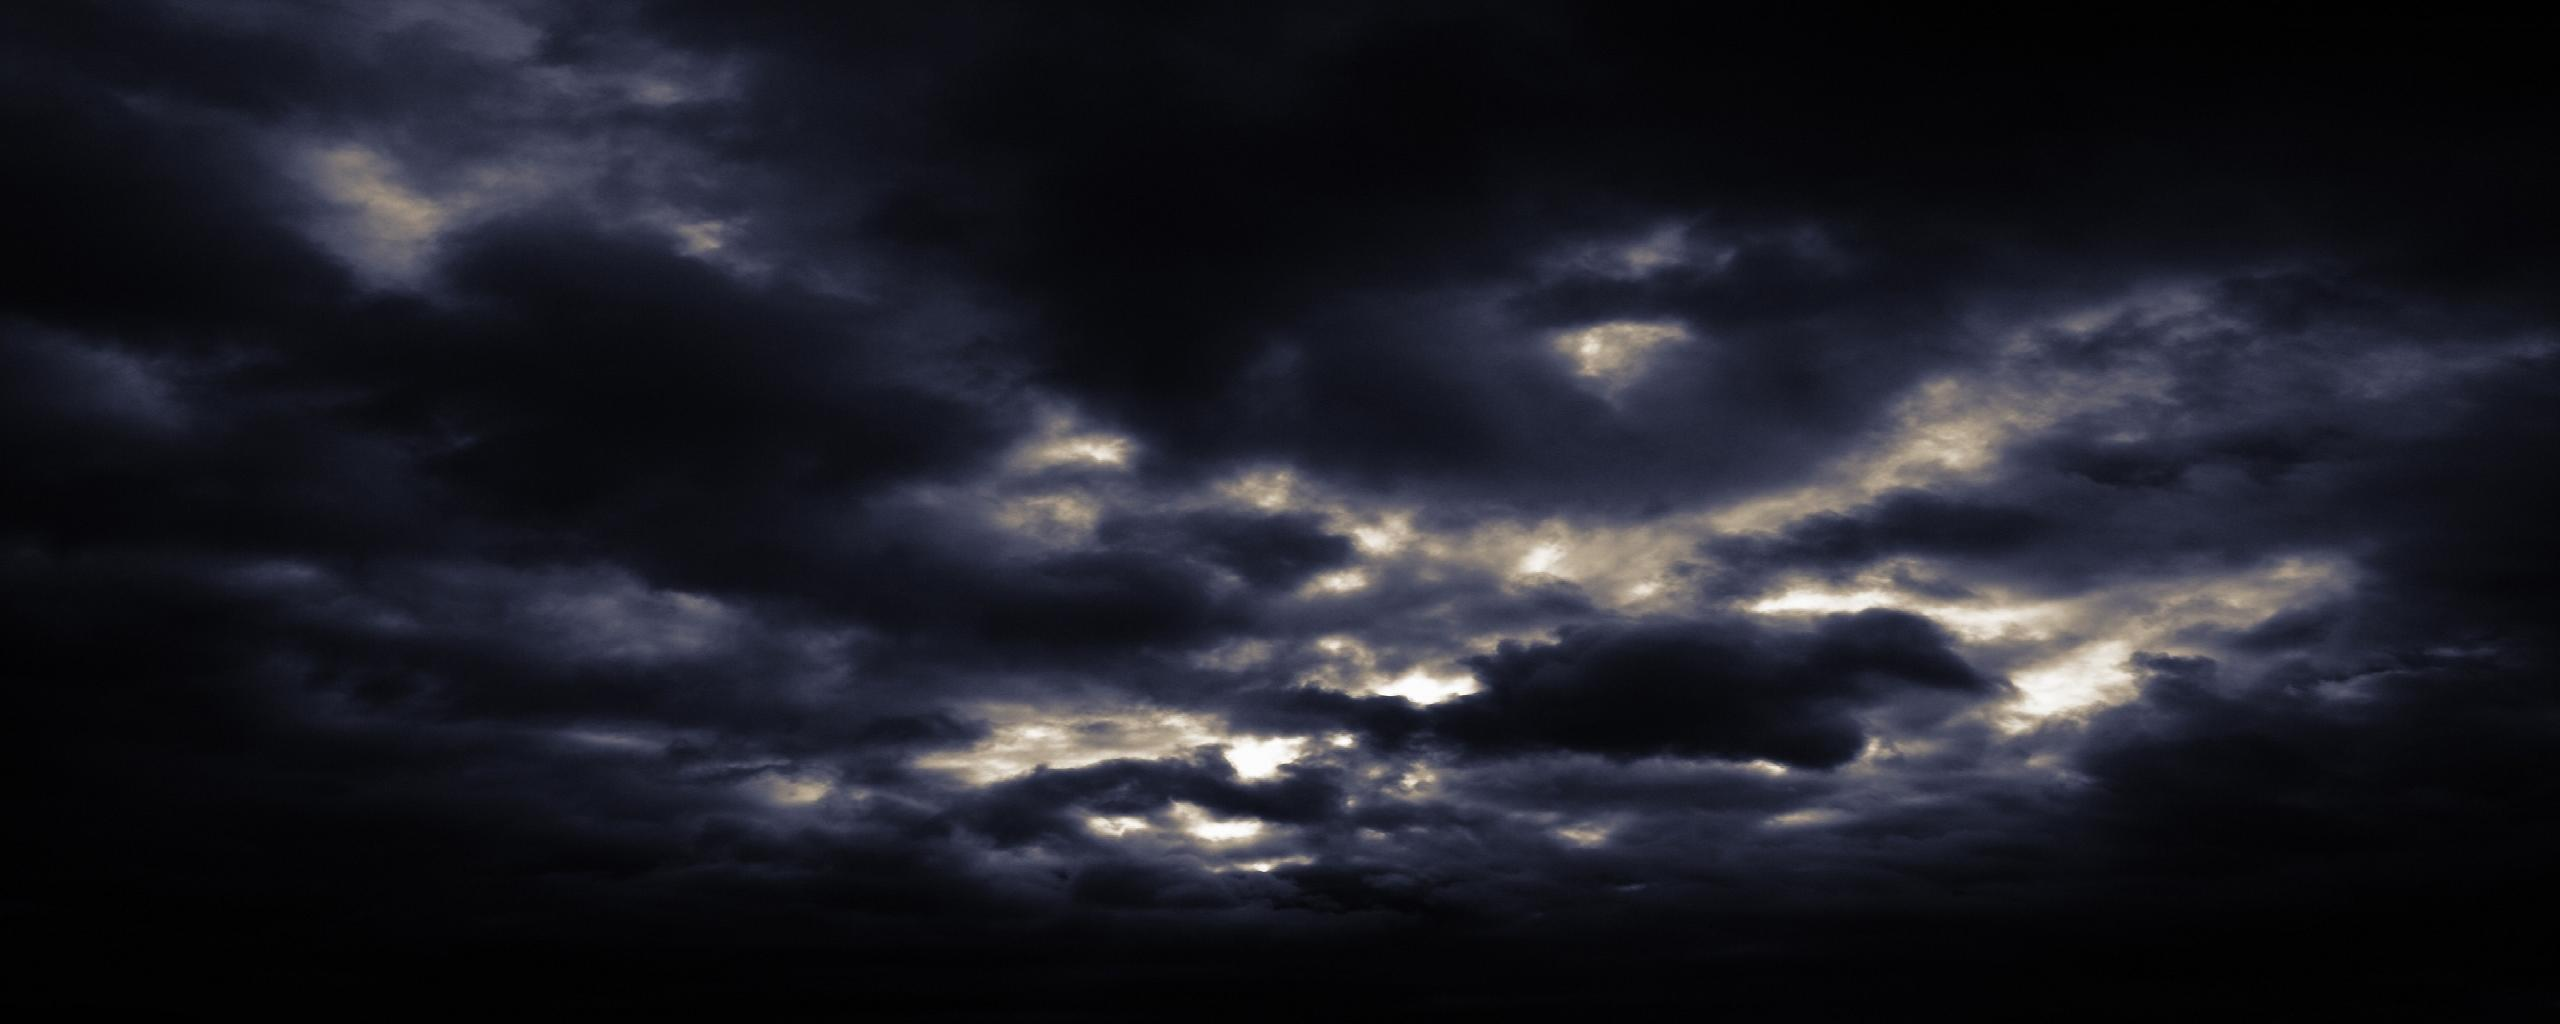 Day Dark Cloud Wallpaper HQ Backgrounds HD wallpapers Gallery 2560x1024